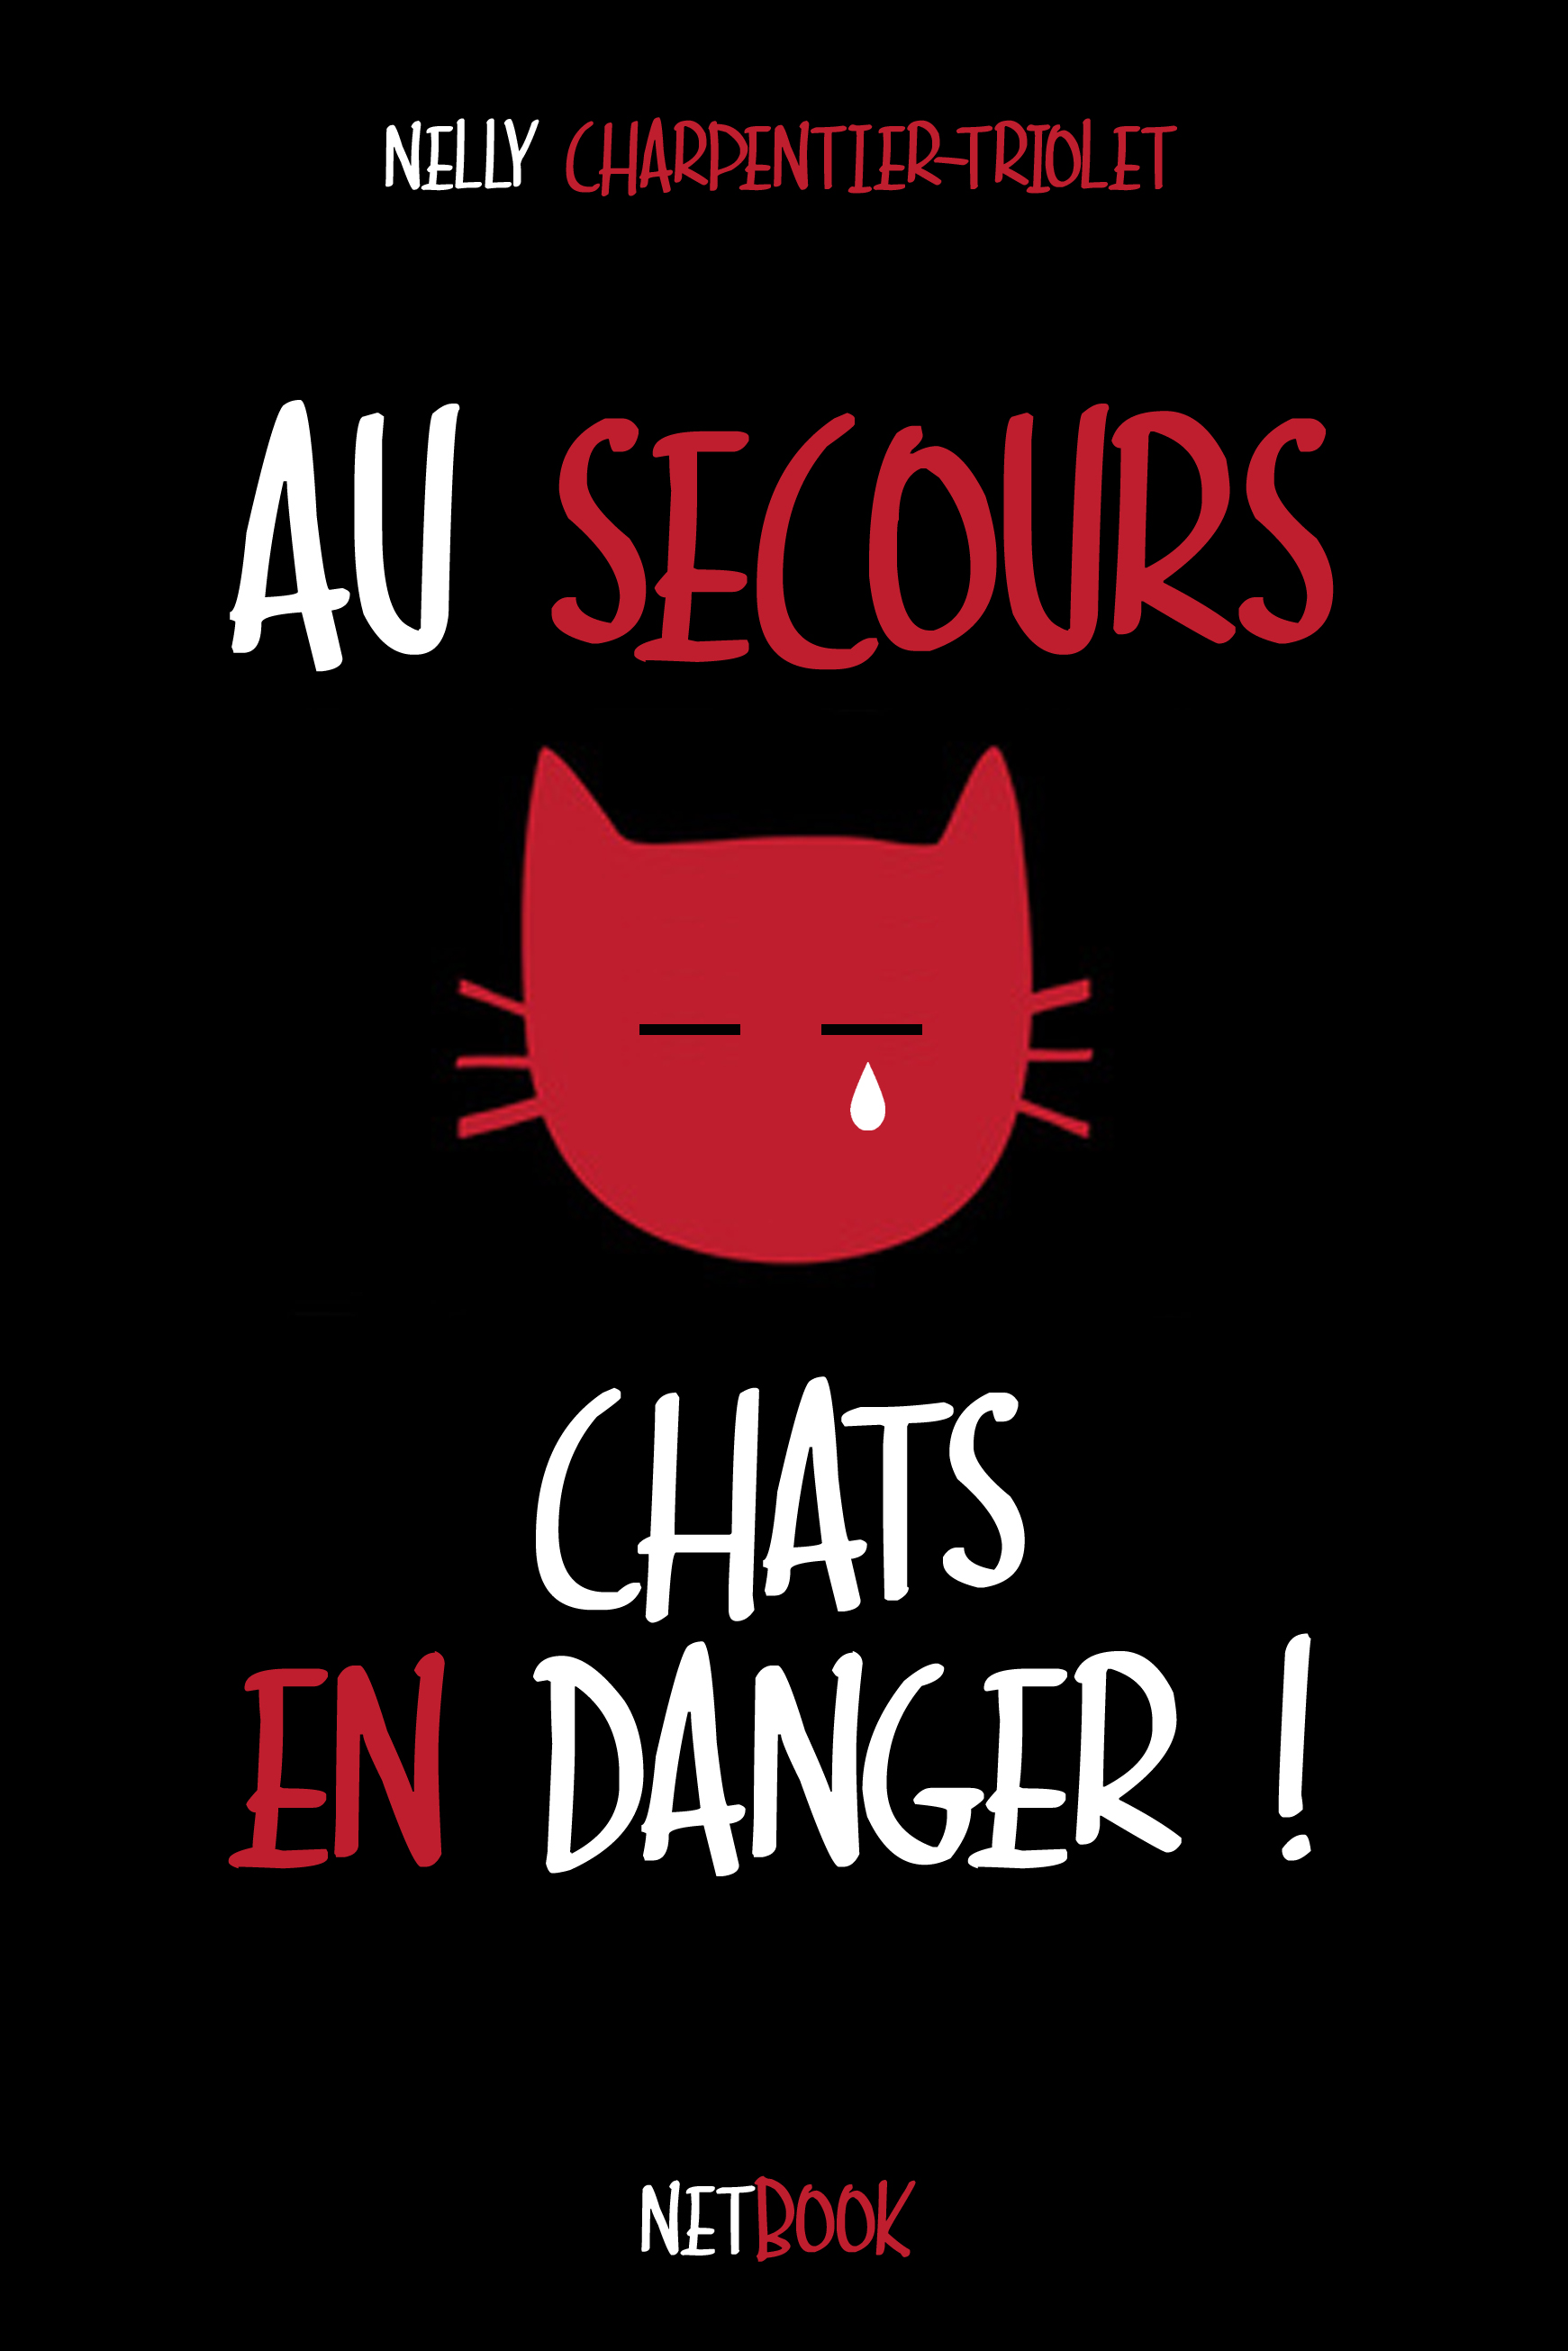 Au secours chats en danger